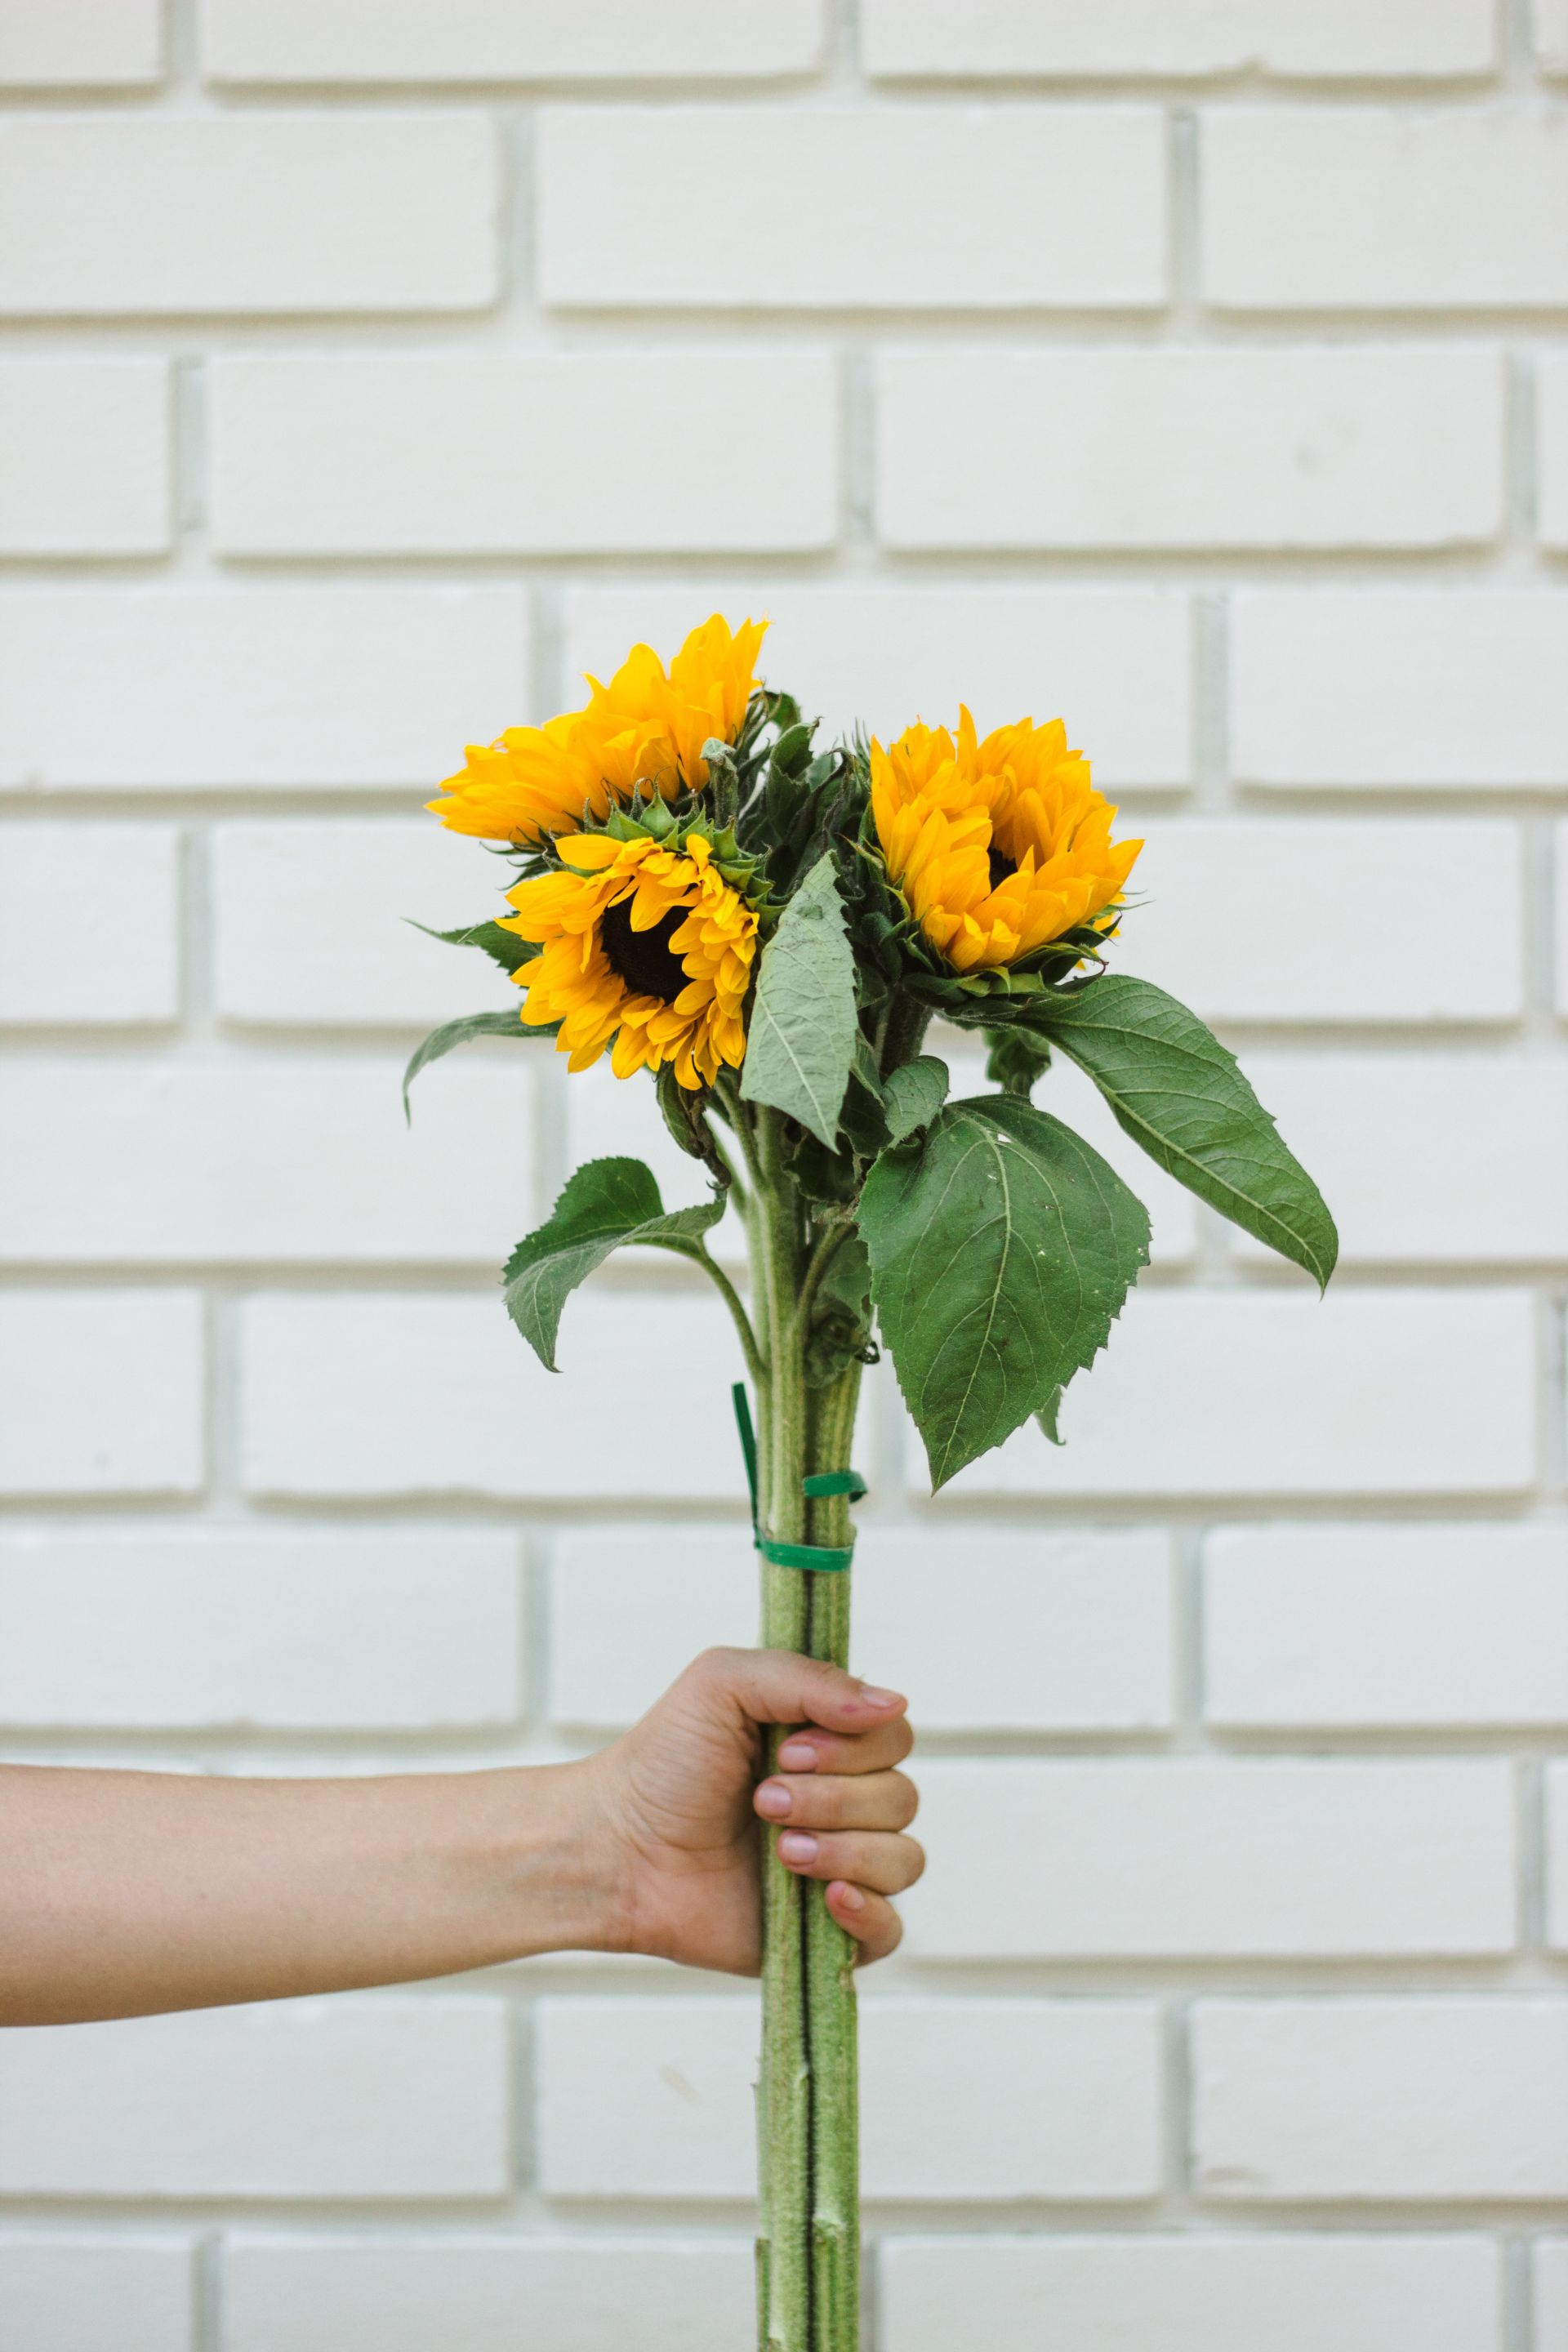 farmer's market sunflowers at temple coffee sacramento for tinted green shot by @sarahakiyama | weekend links v05 sarahmichiko.com